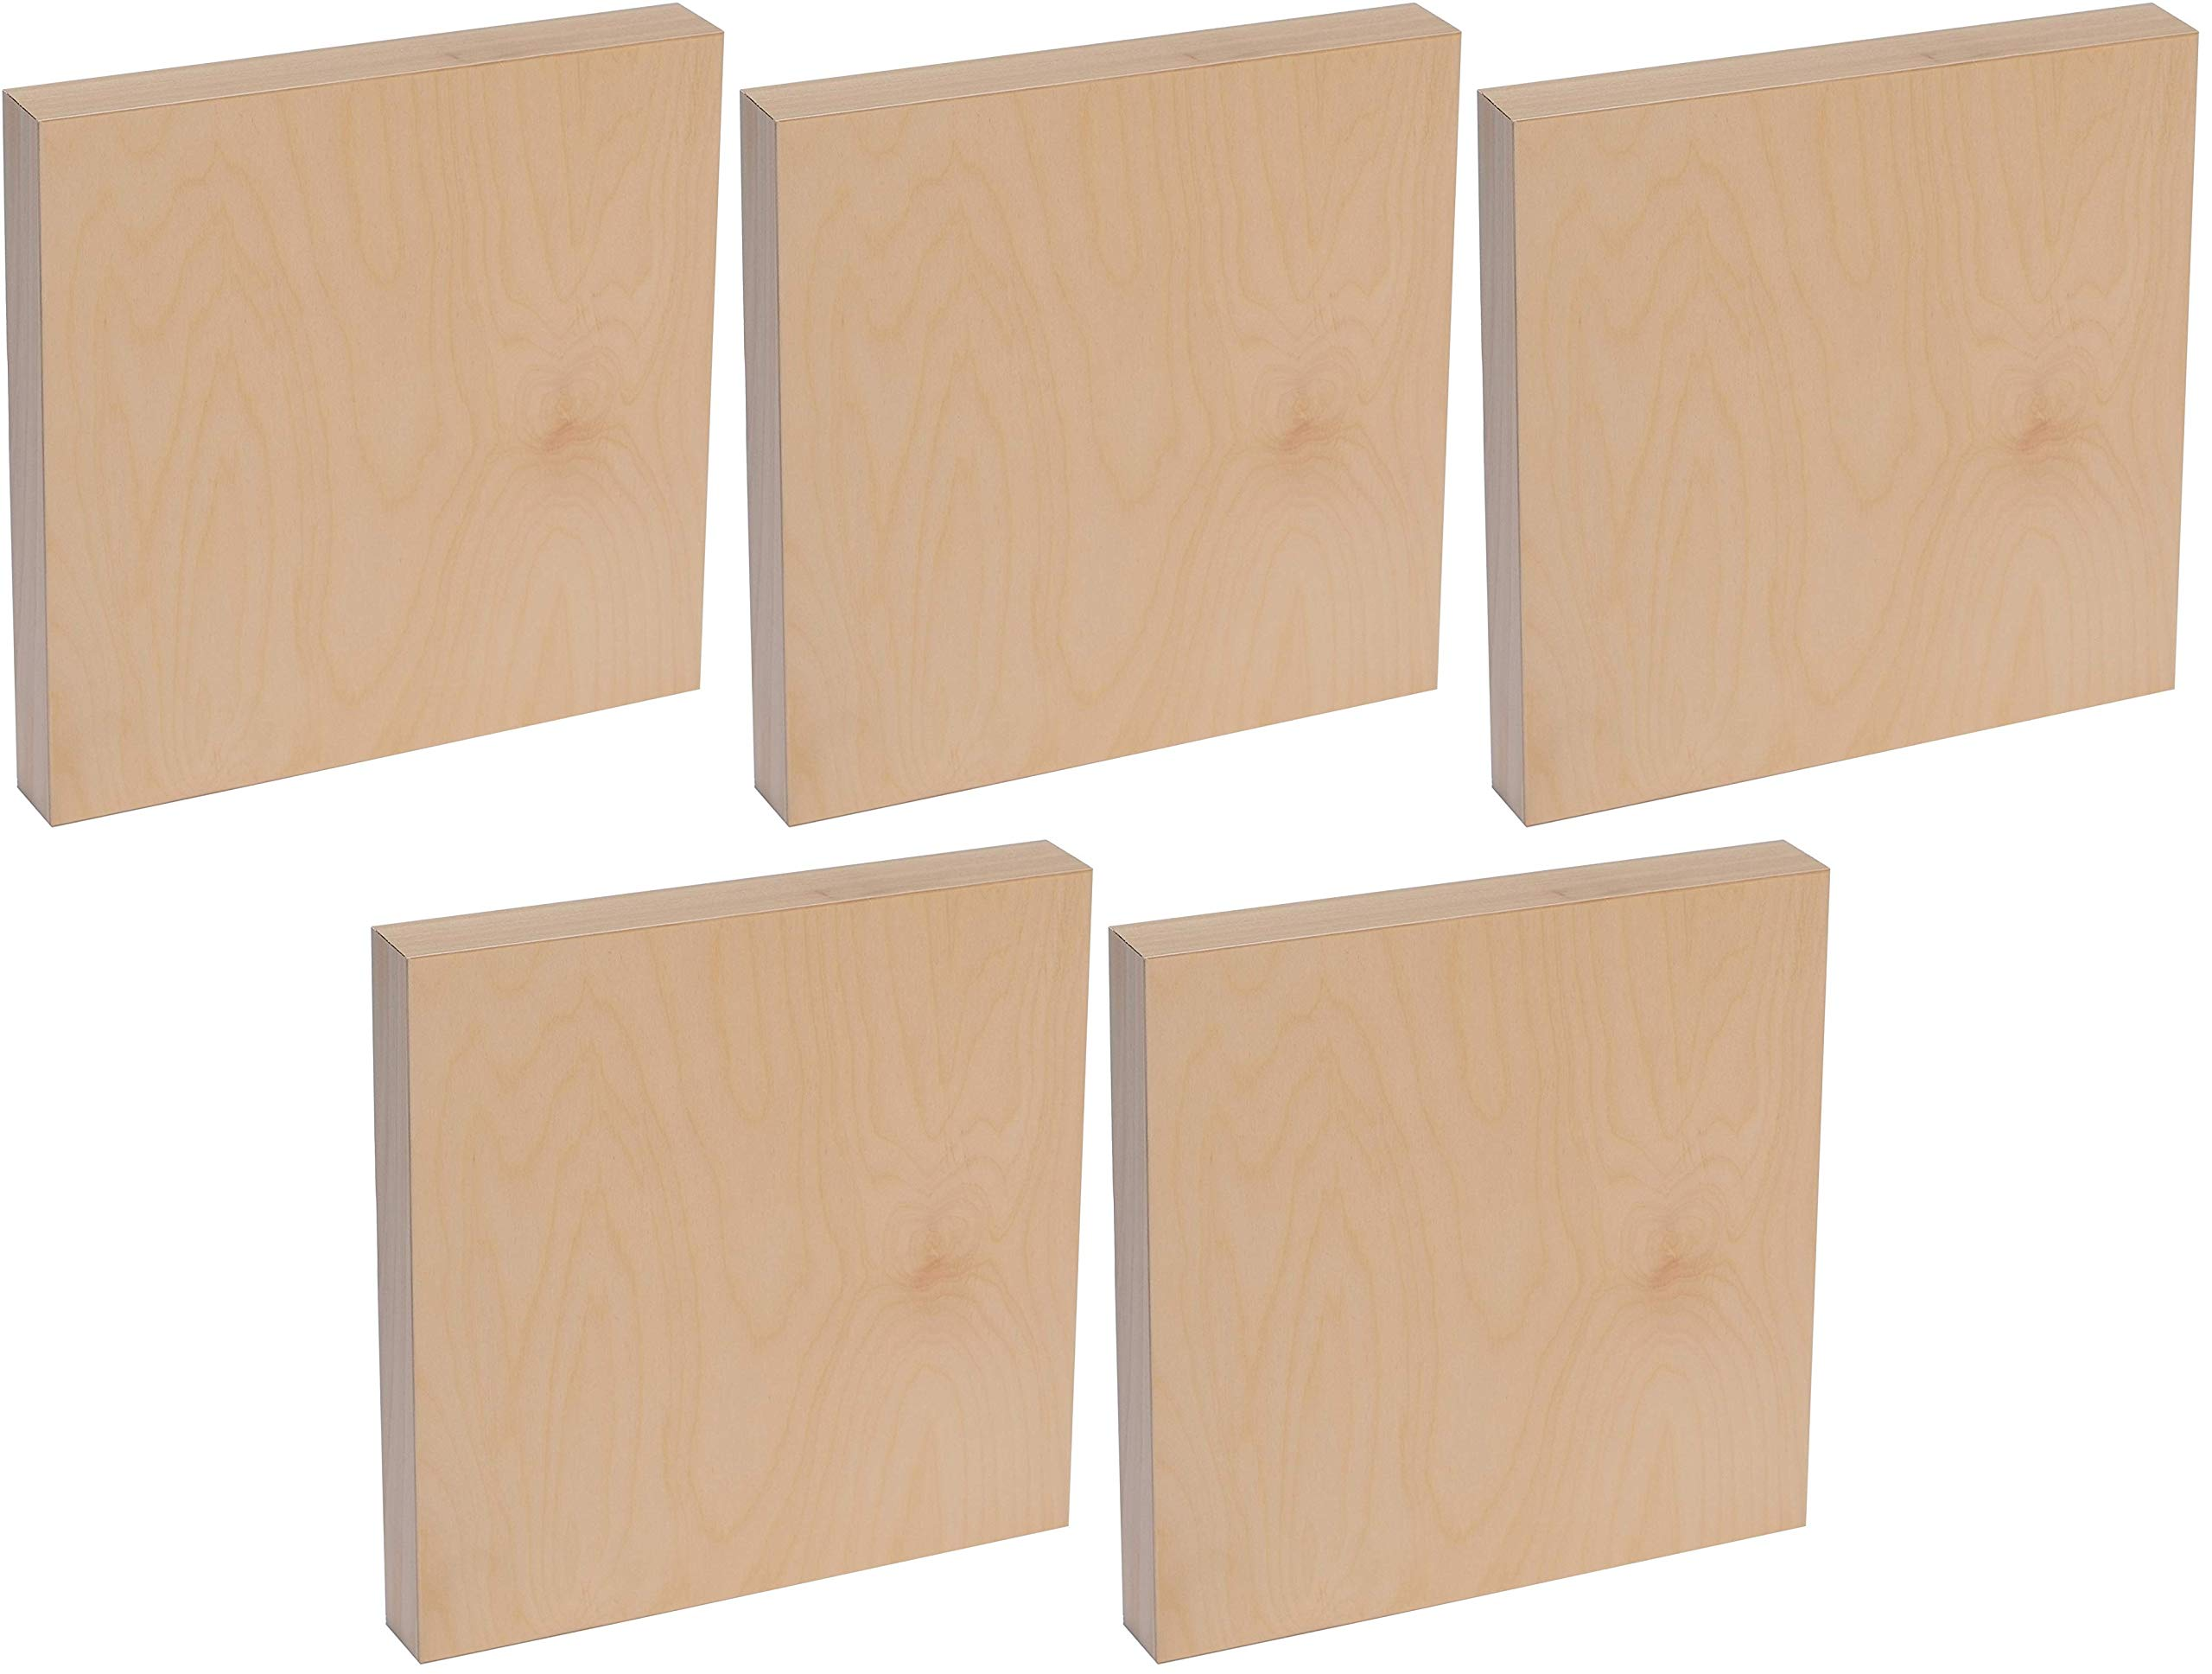 American Easel 16 Inch by 16 Inch by 1 5/8 Inch Deep Cradled Painting Panel (Fіvе Расk) by American Easel, LLC.